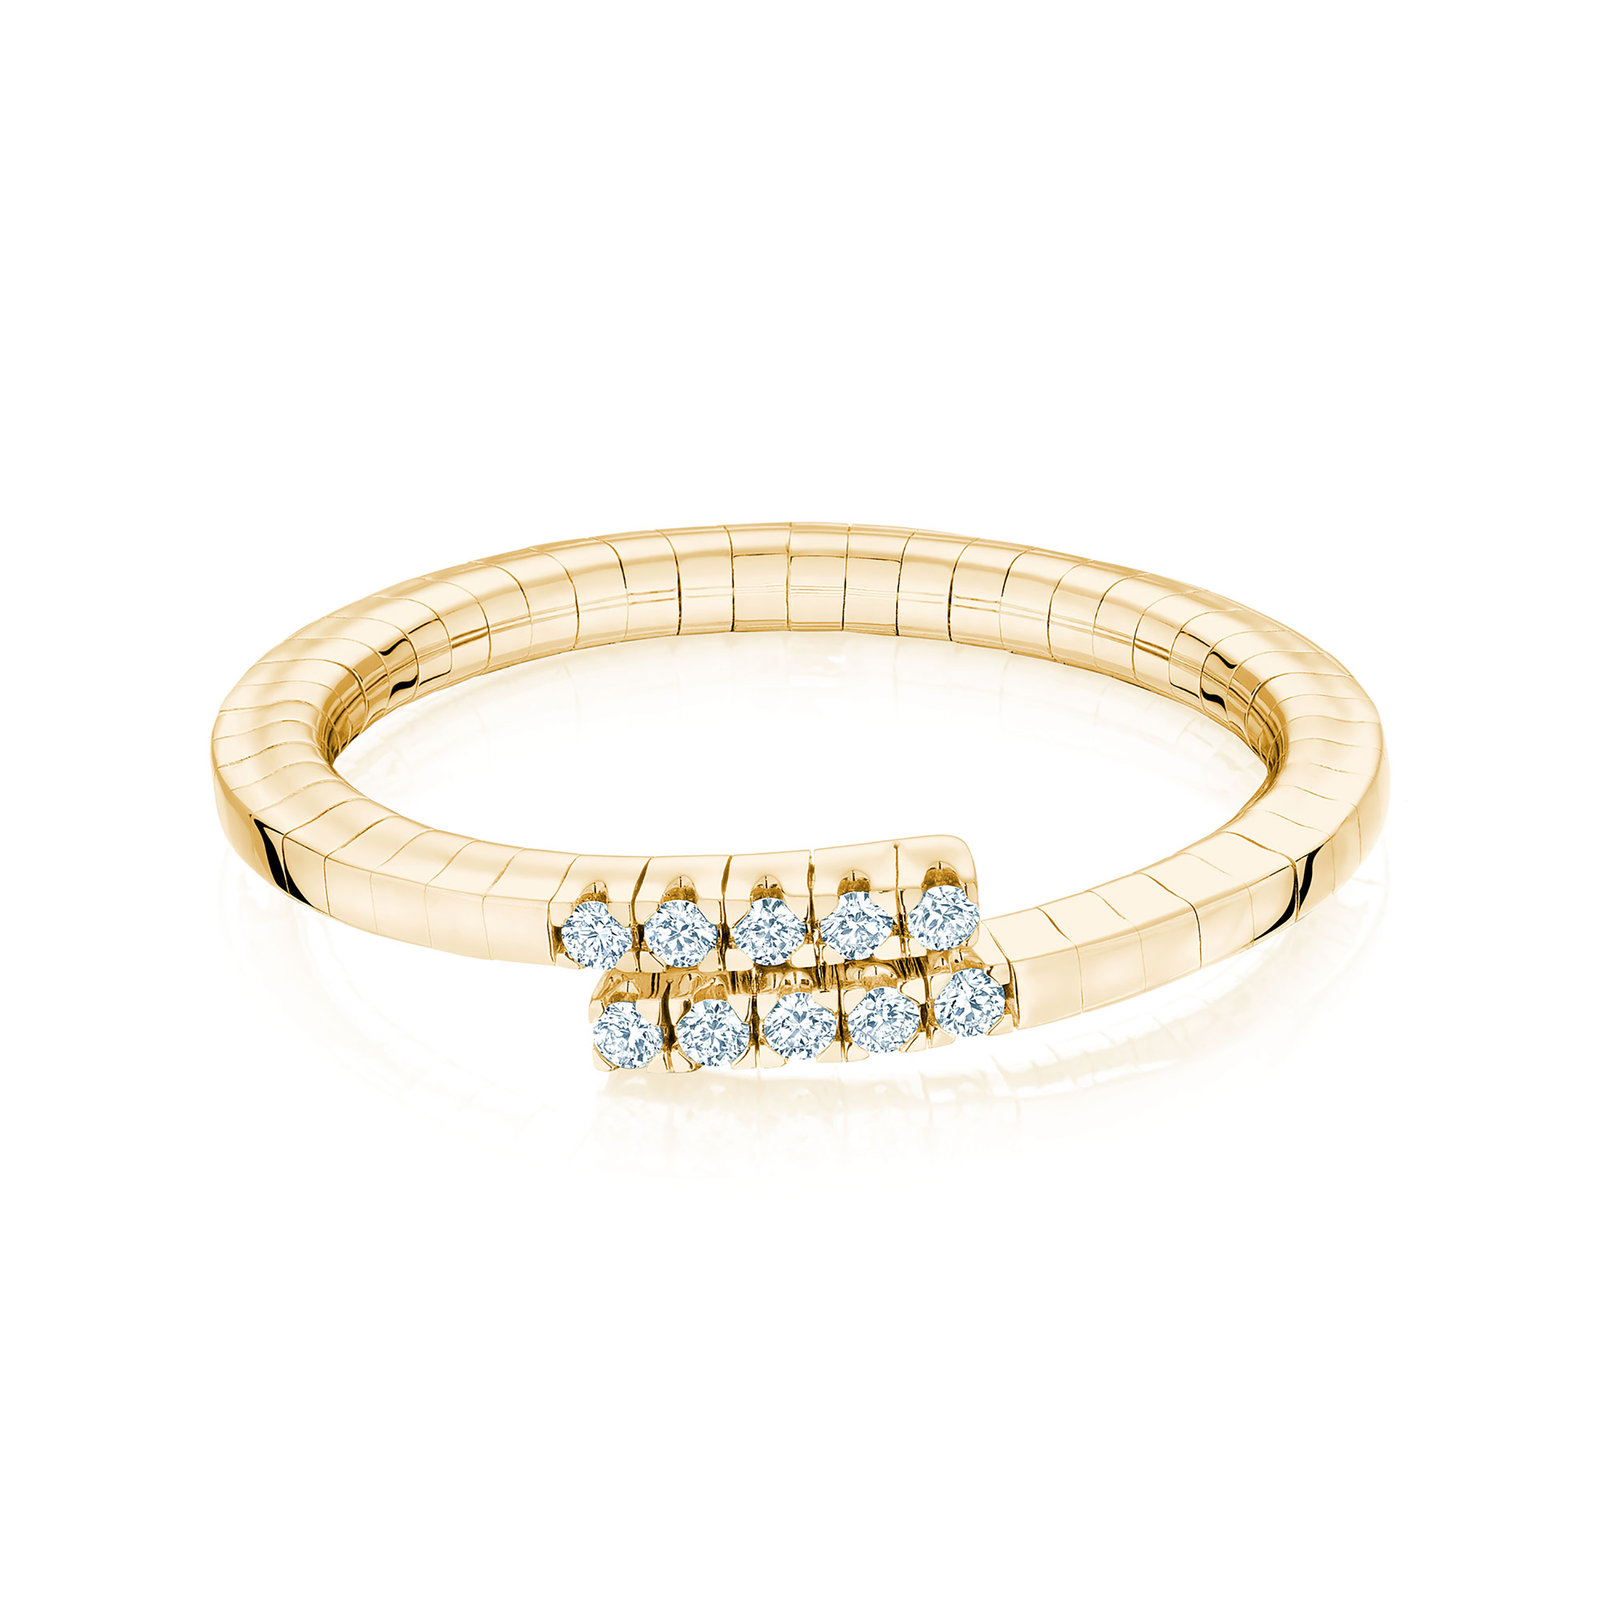 Birks Rosée du Matin Yellow Gold Flex Wrap Ring - Ring Size K